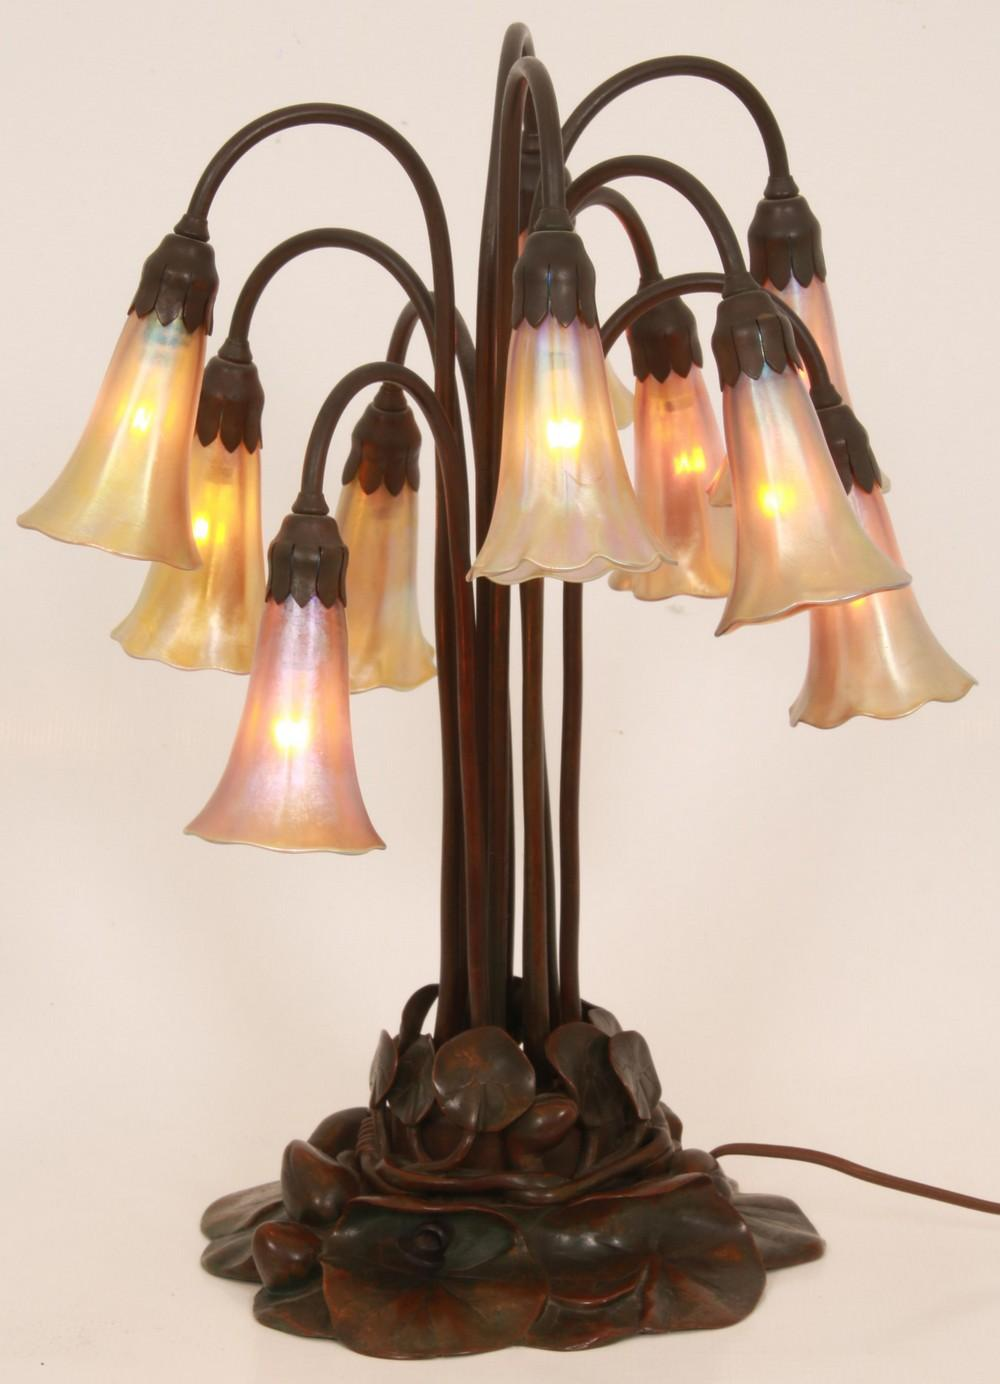 Tiffany Studios 10 Light Lily Lamp